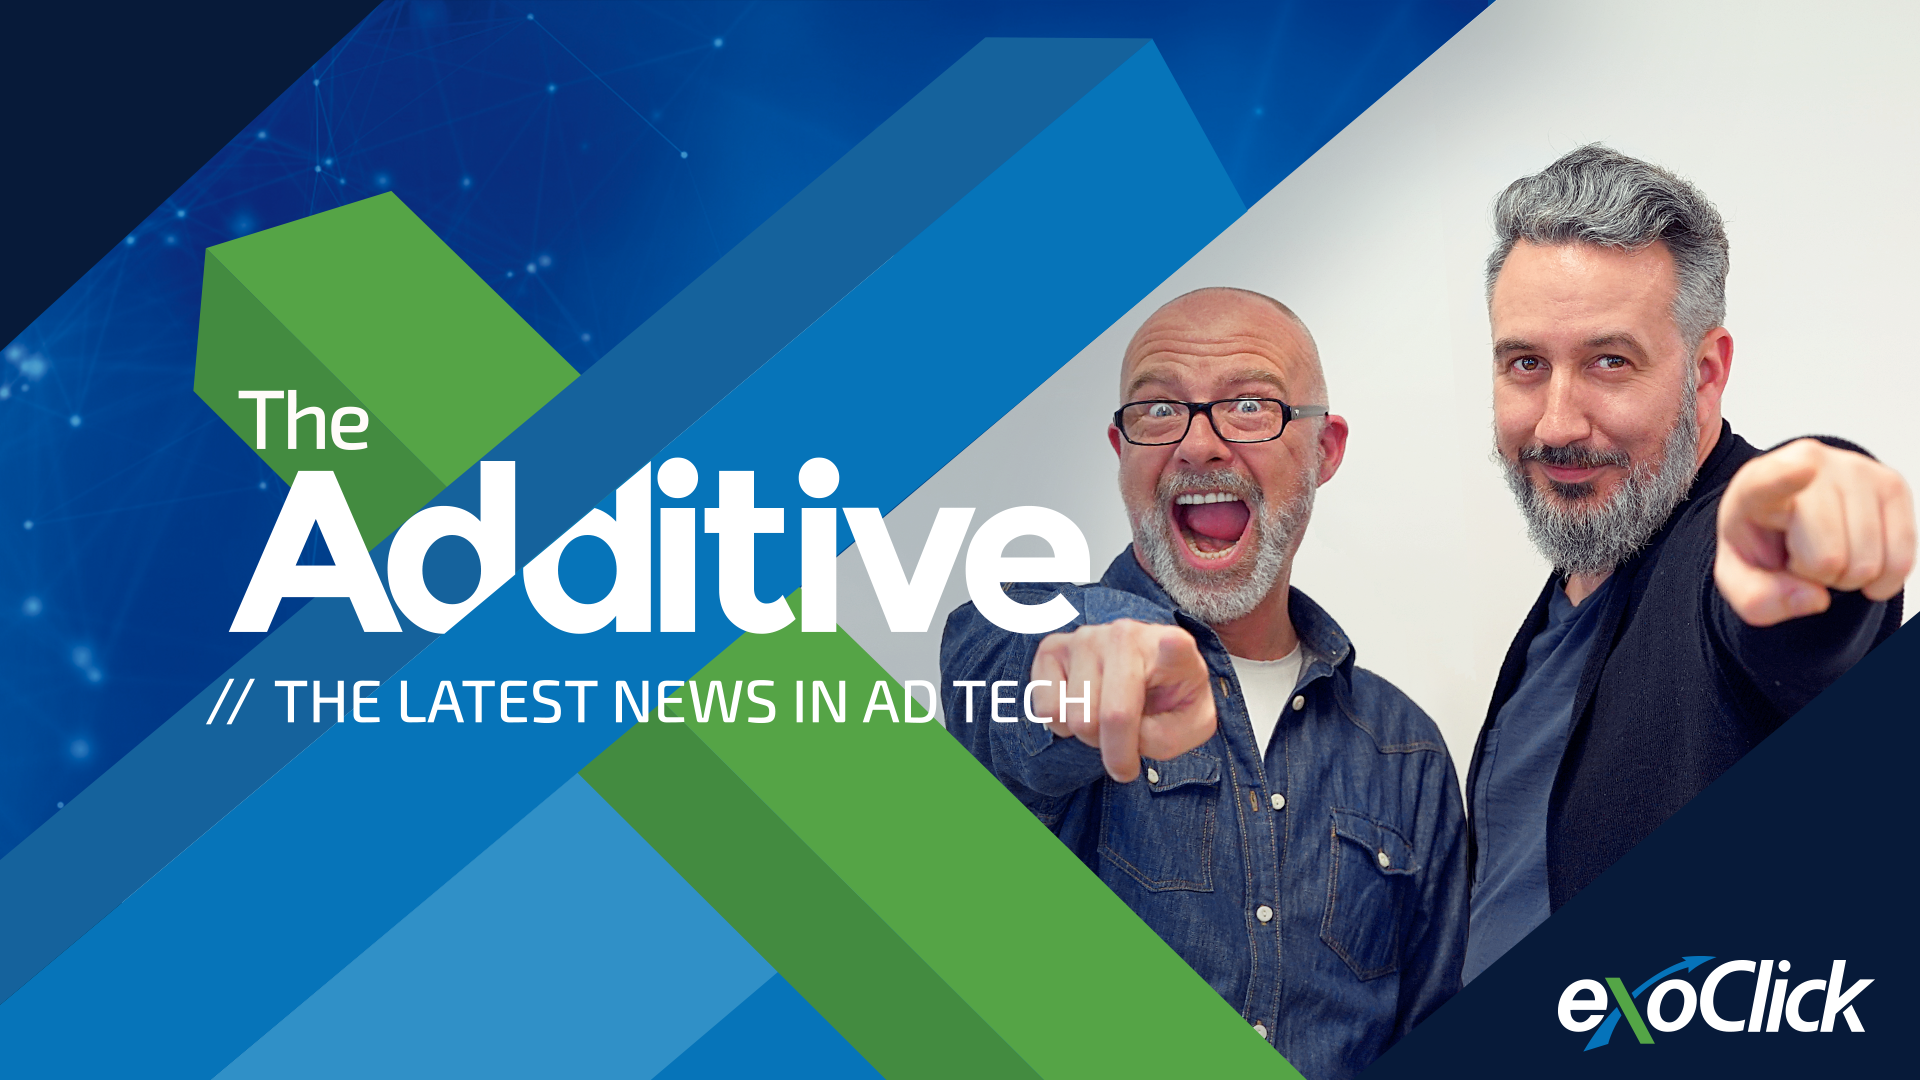 The Additive January 2020 Show